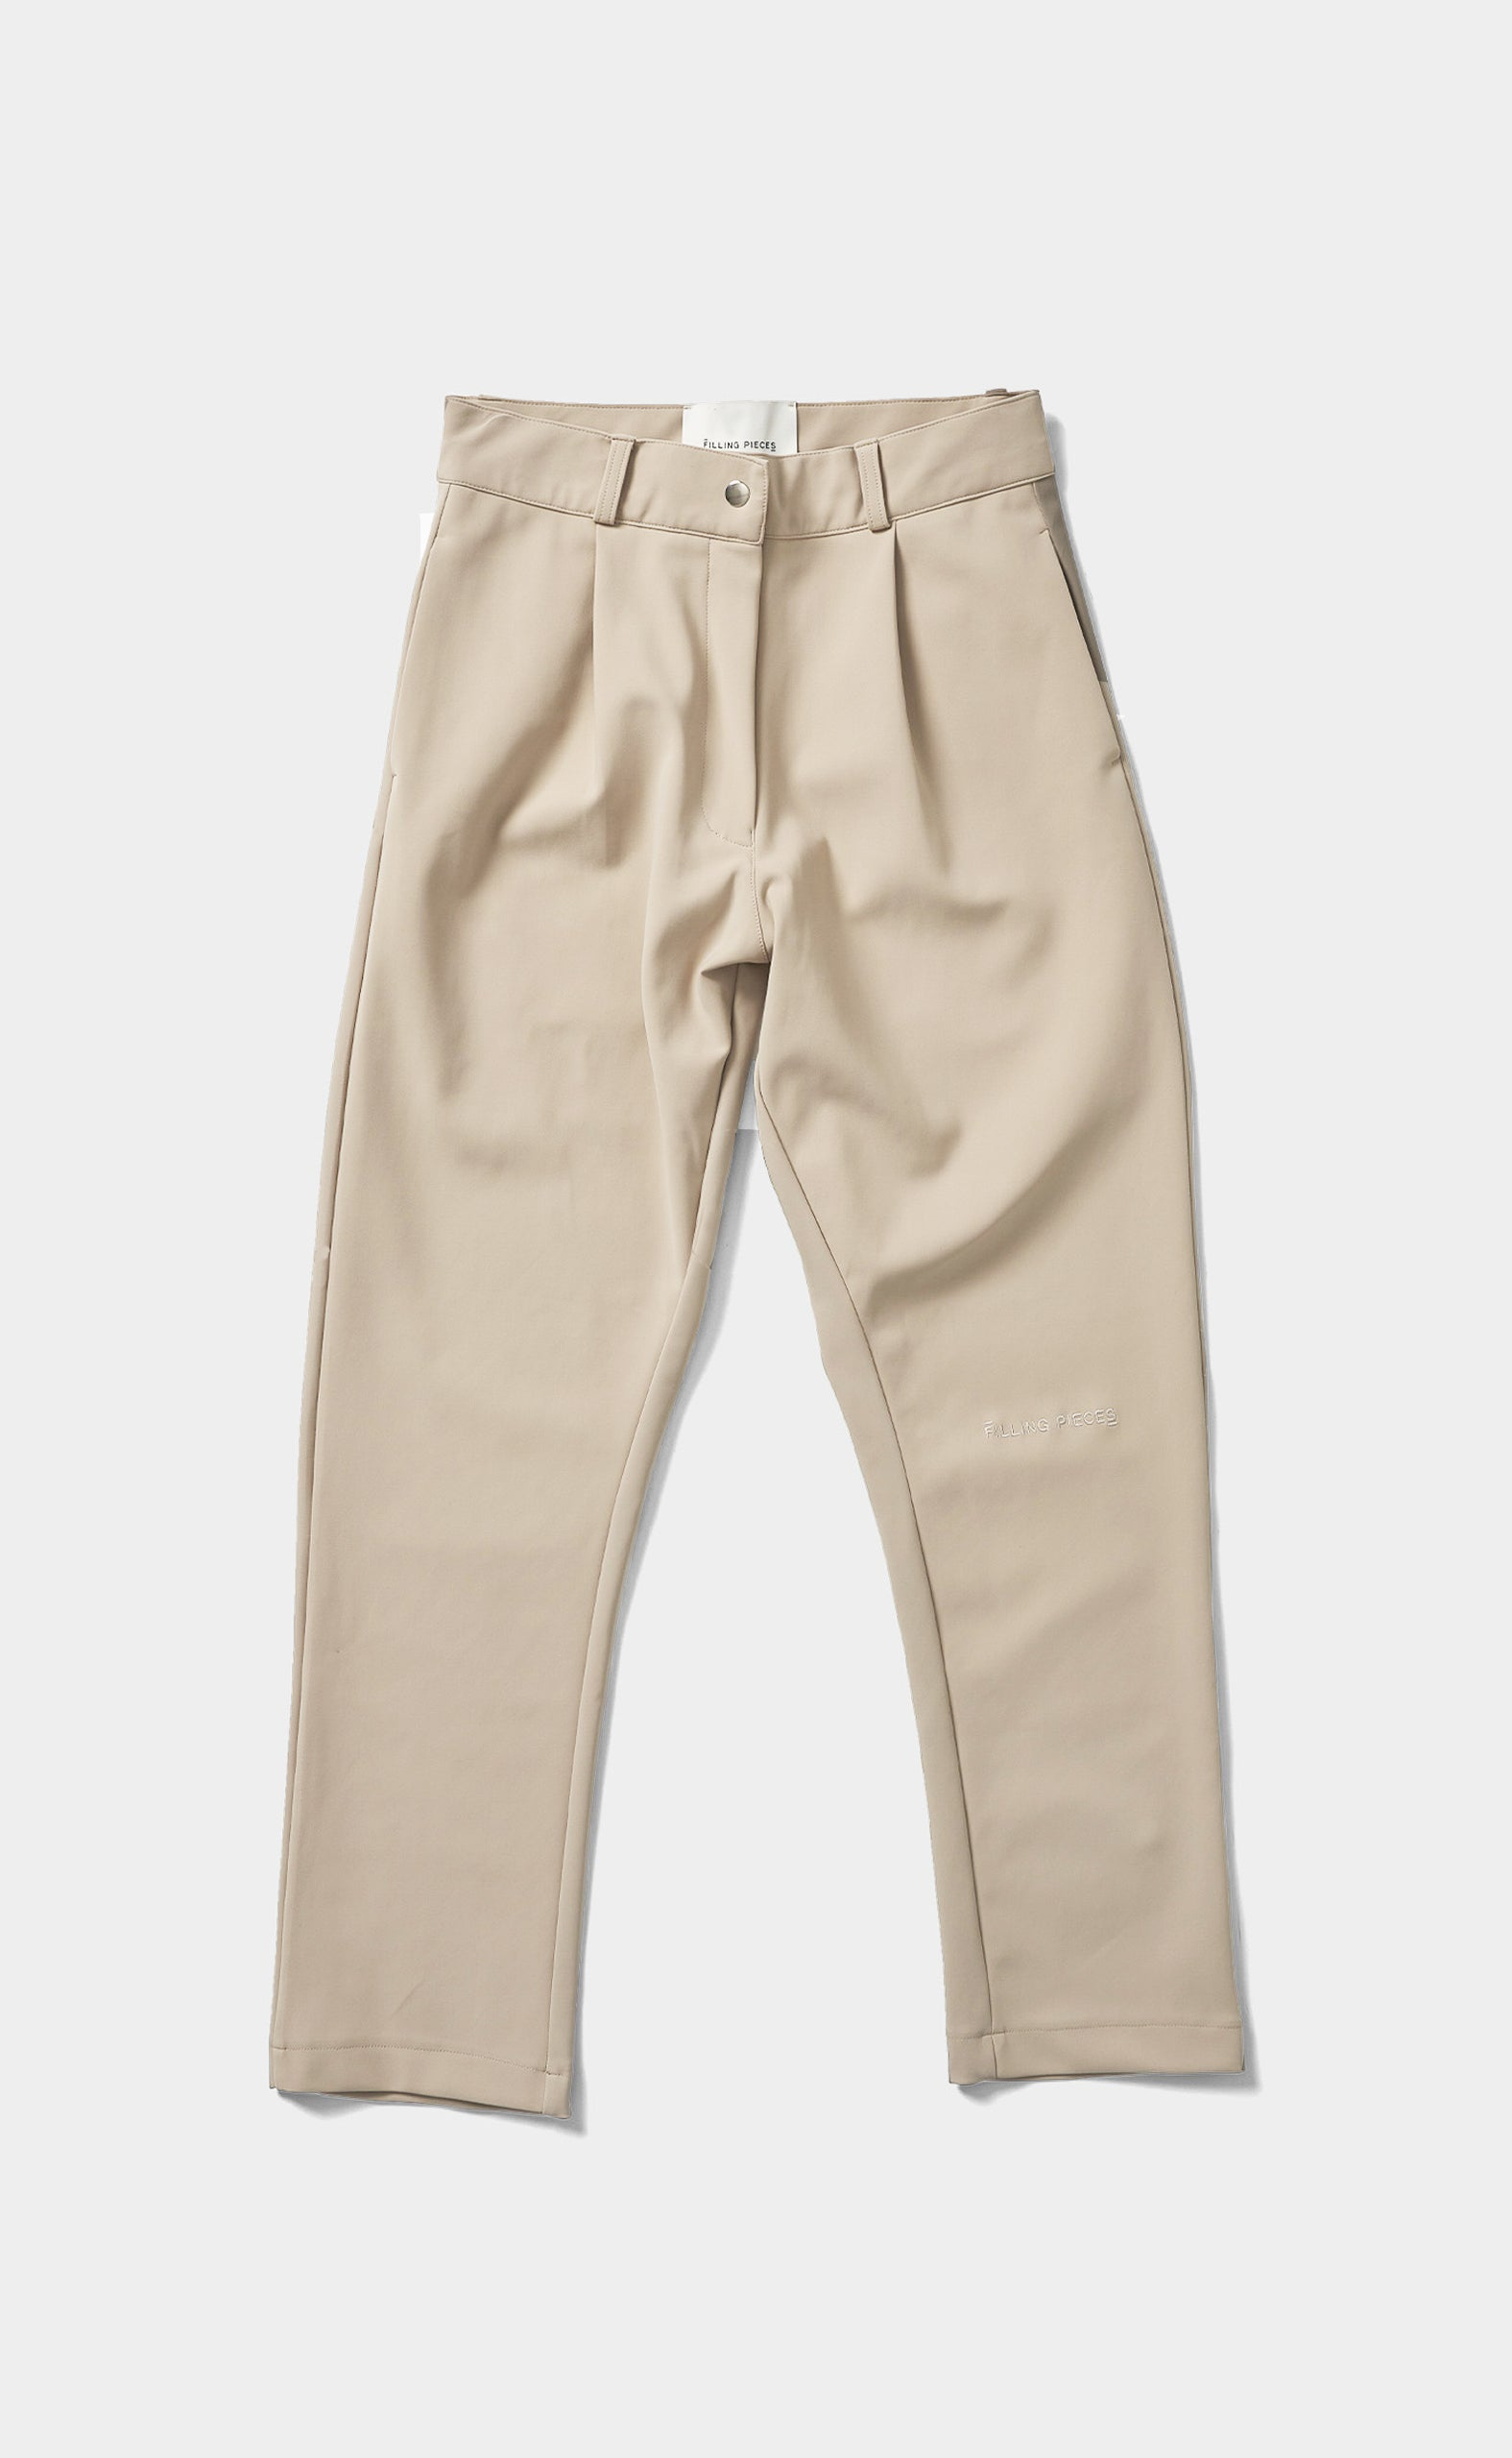 Suit Pants Classic Beige - men